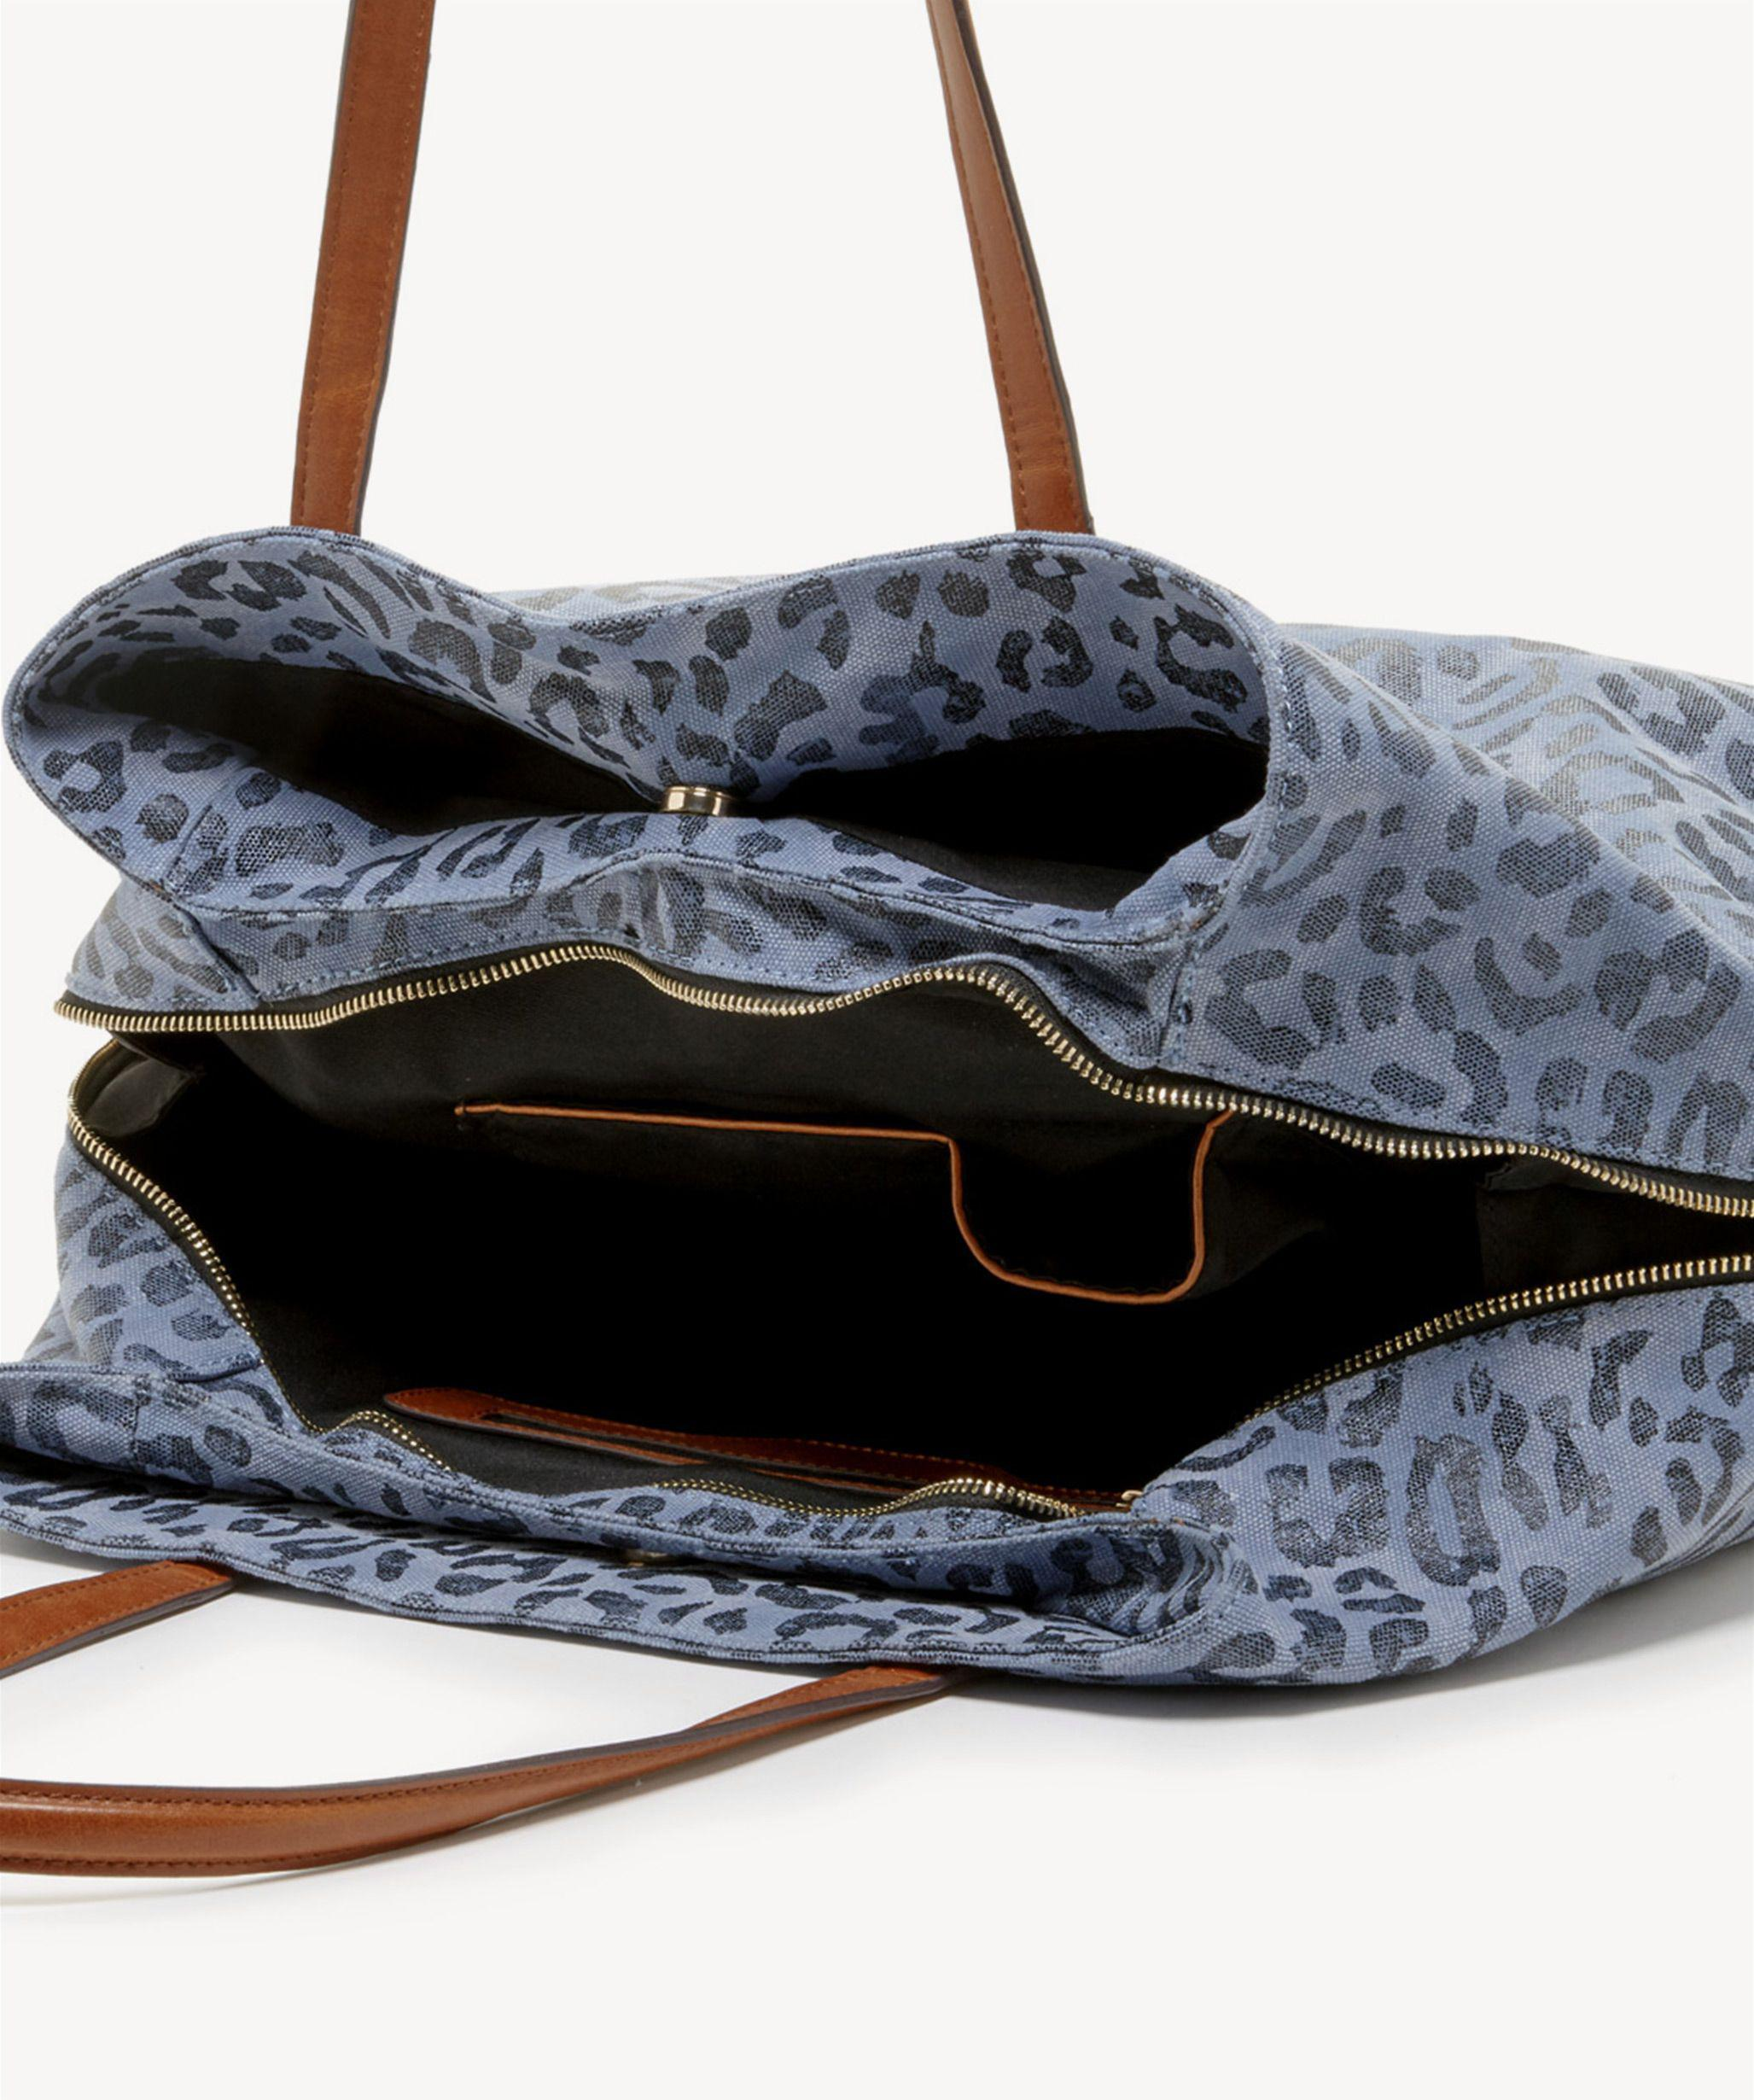 29885f927 Sole Society Millie Tote Fabric Tote in Blue - Lyst